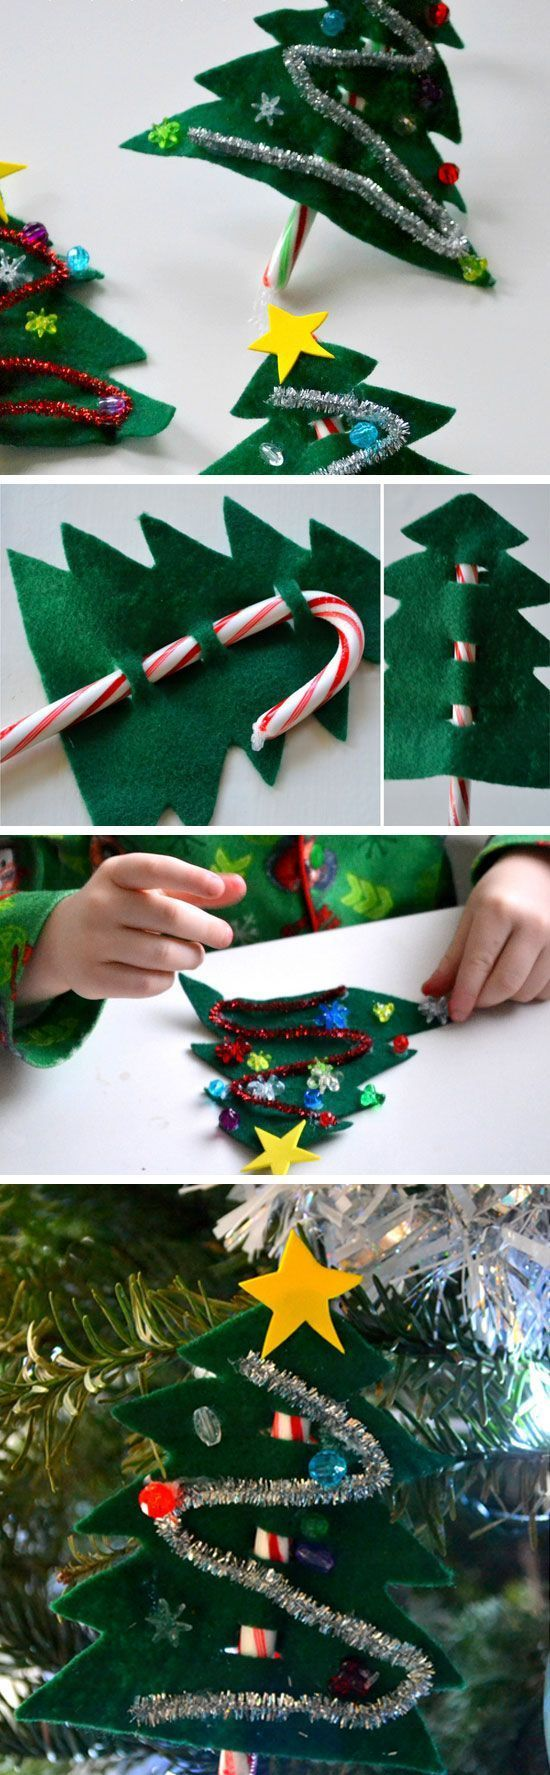 Candy Cane Christmas Trees | DIY Christmas Crafts for Kids to Make